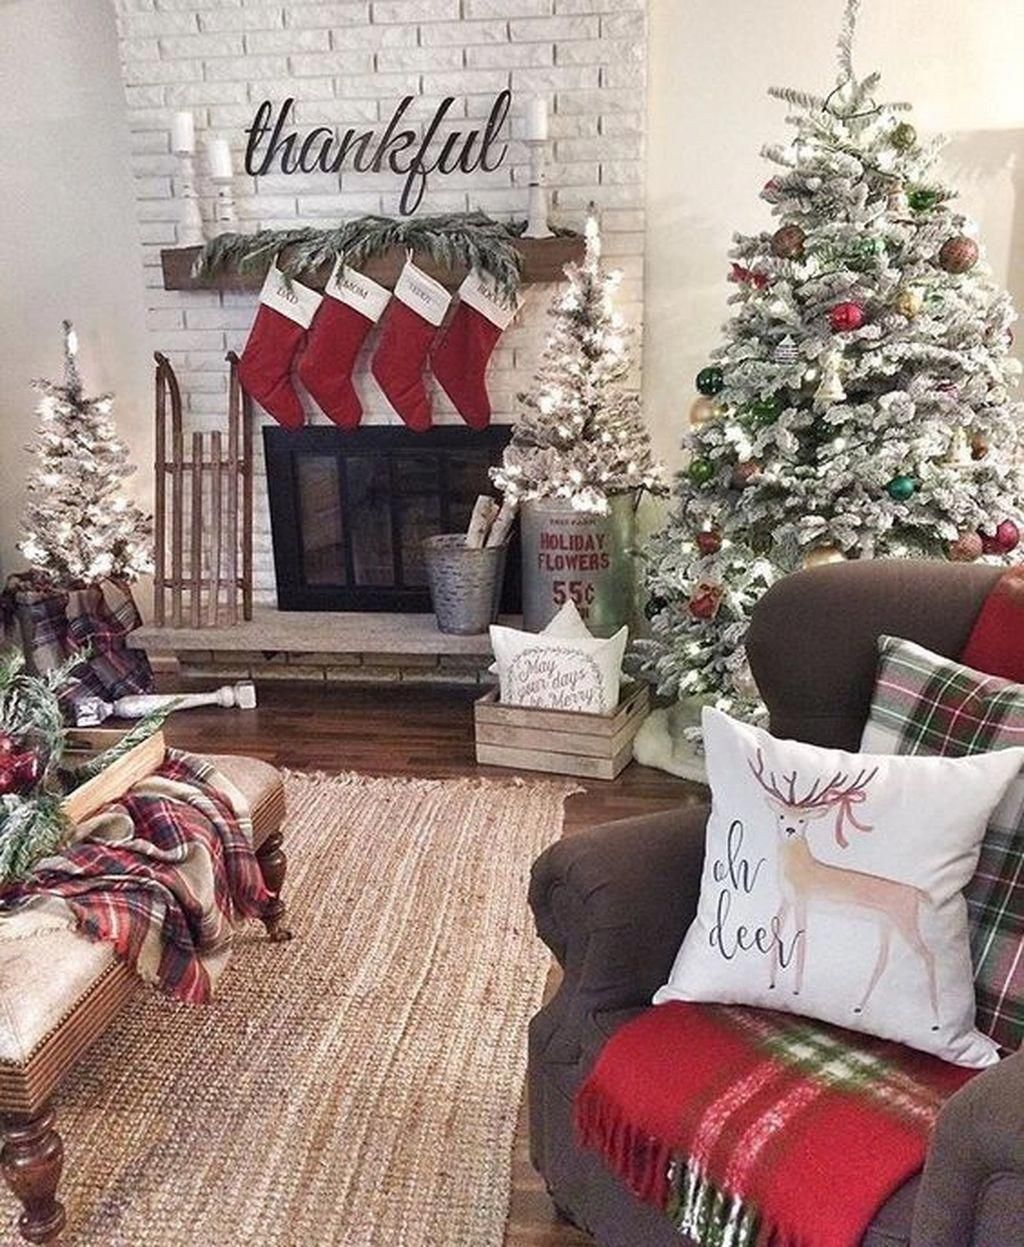 Christmas Decorations For Fence Christmas Decorations B M Christmas Room Christmas Decorations Living Room Holiday Decor